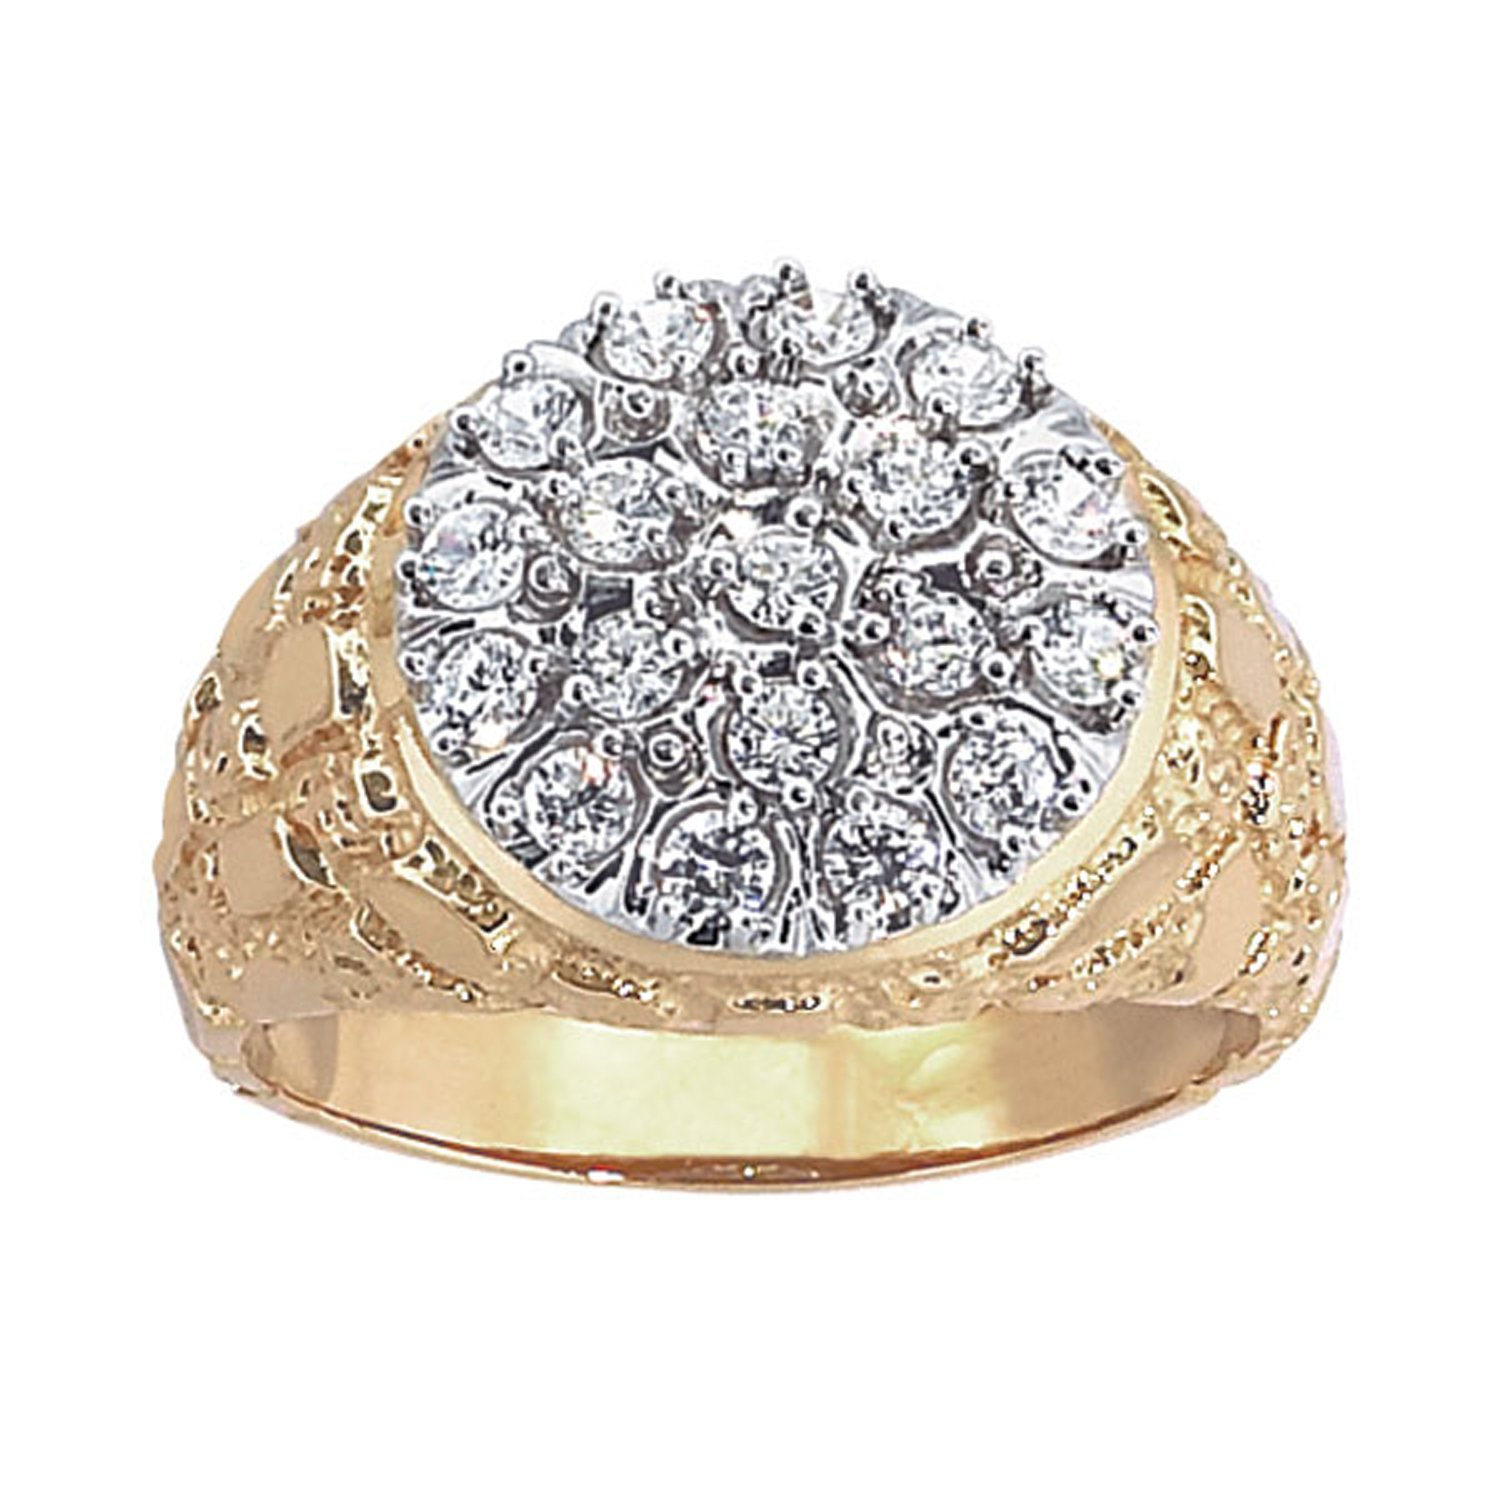 Men's 10k Two-Tone Gold with Nugget Sides Diamond Cluster Wedding Band (1cttw, H-I Color, I1-I2 Clarity), Size 8.5